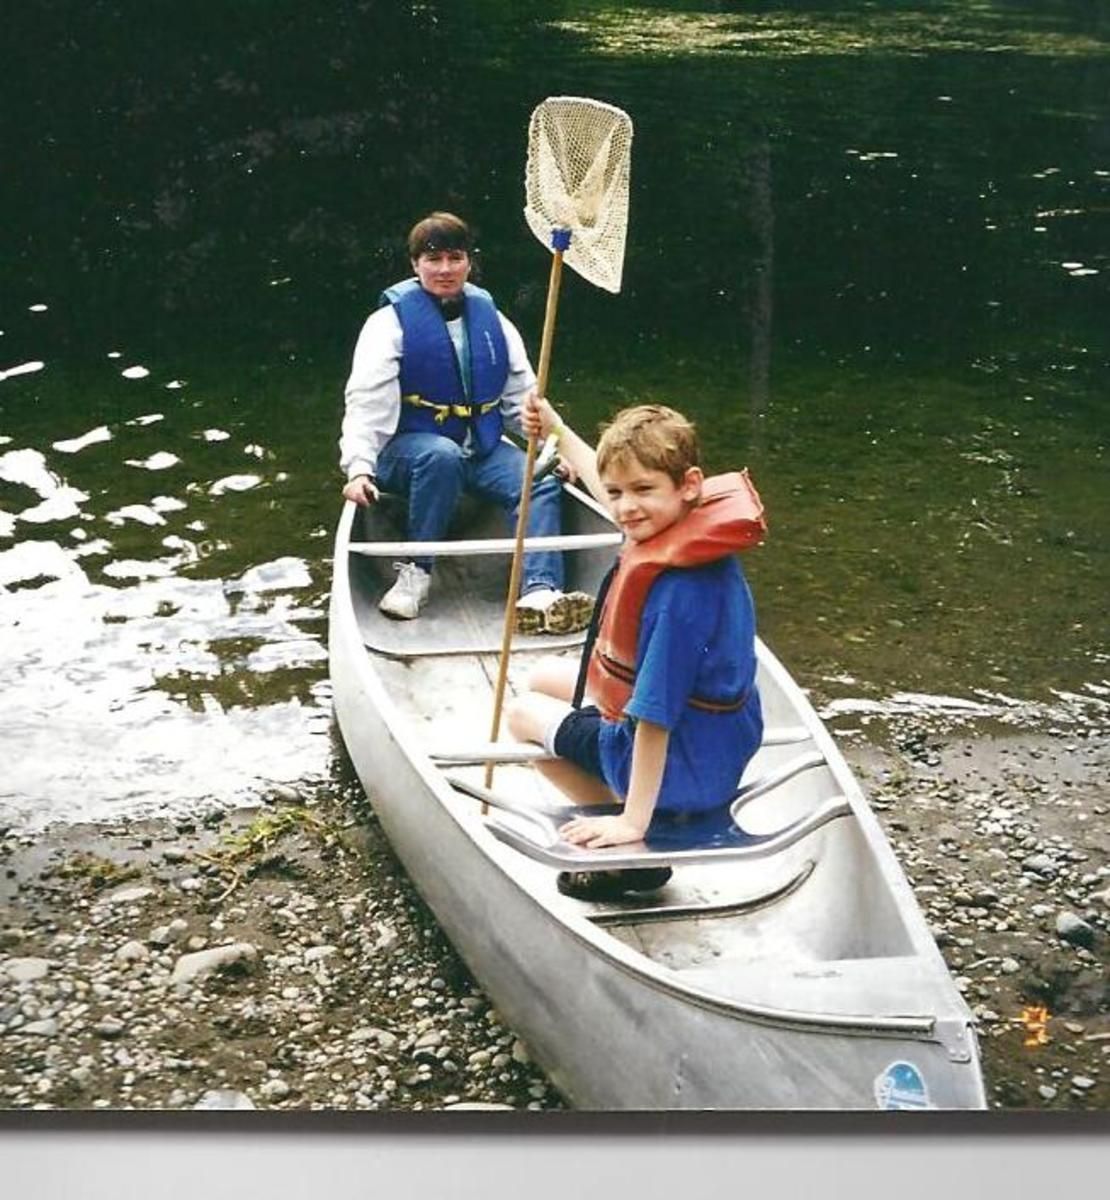 I told my son a story while we rowed in the boat.